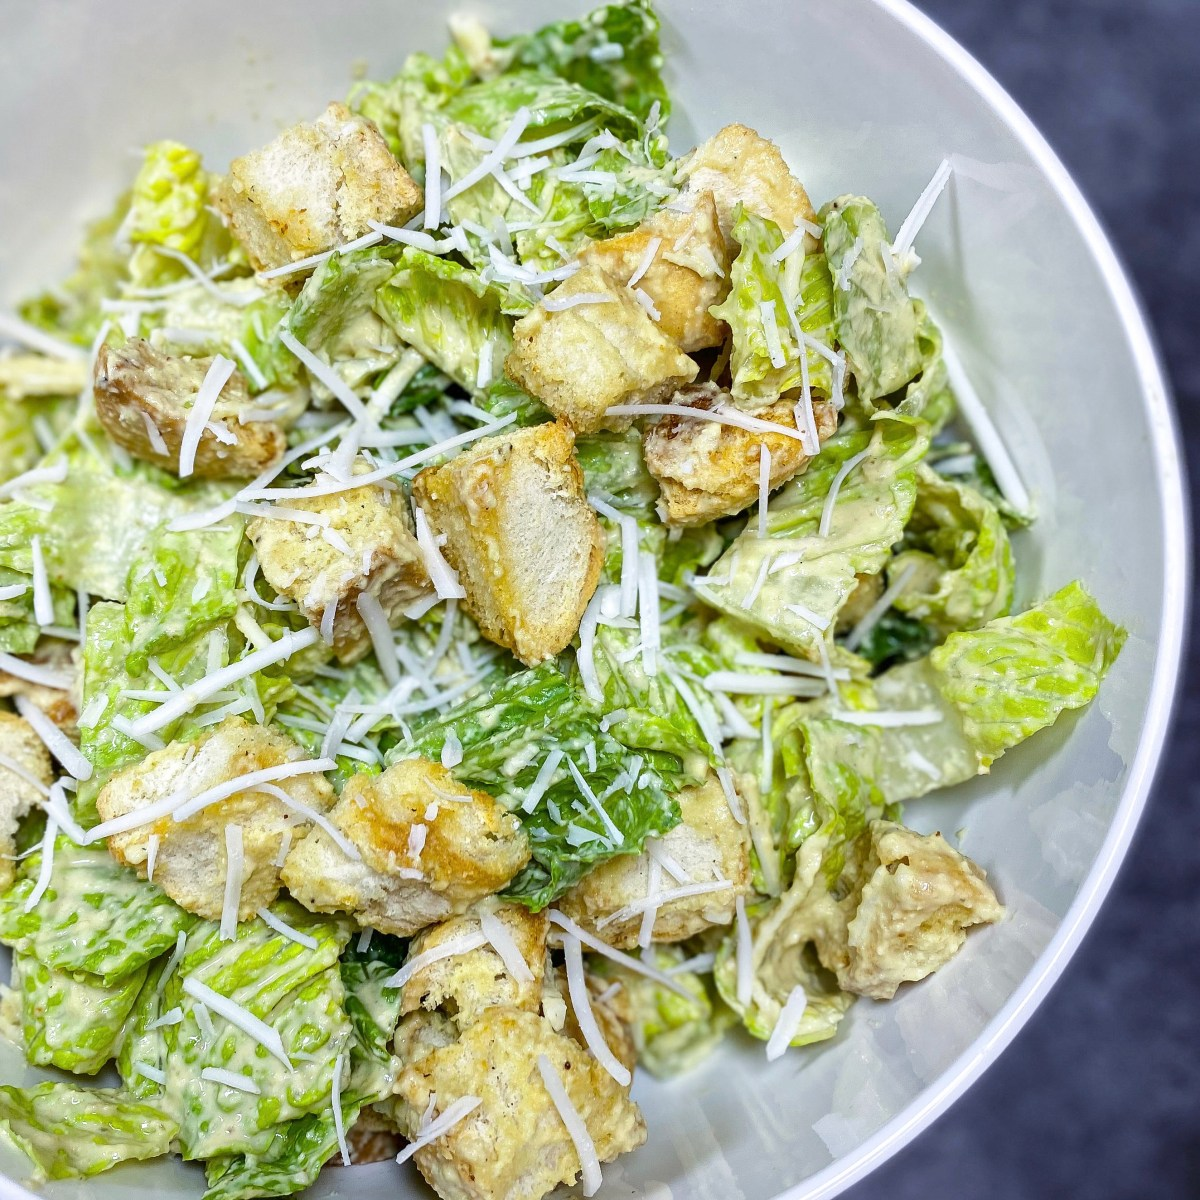 caesar salad with homemade croutons and dressing